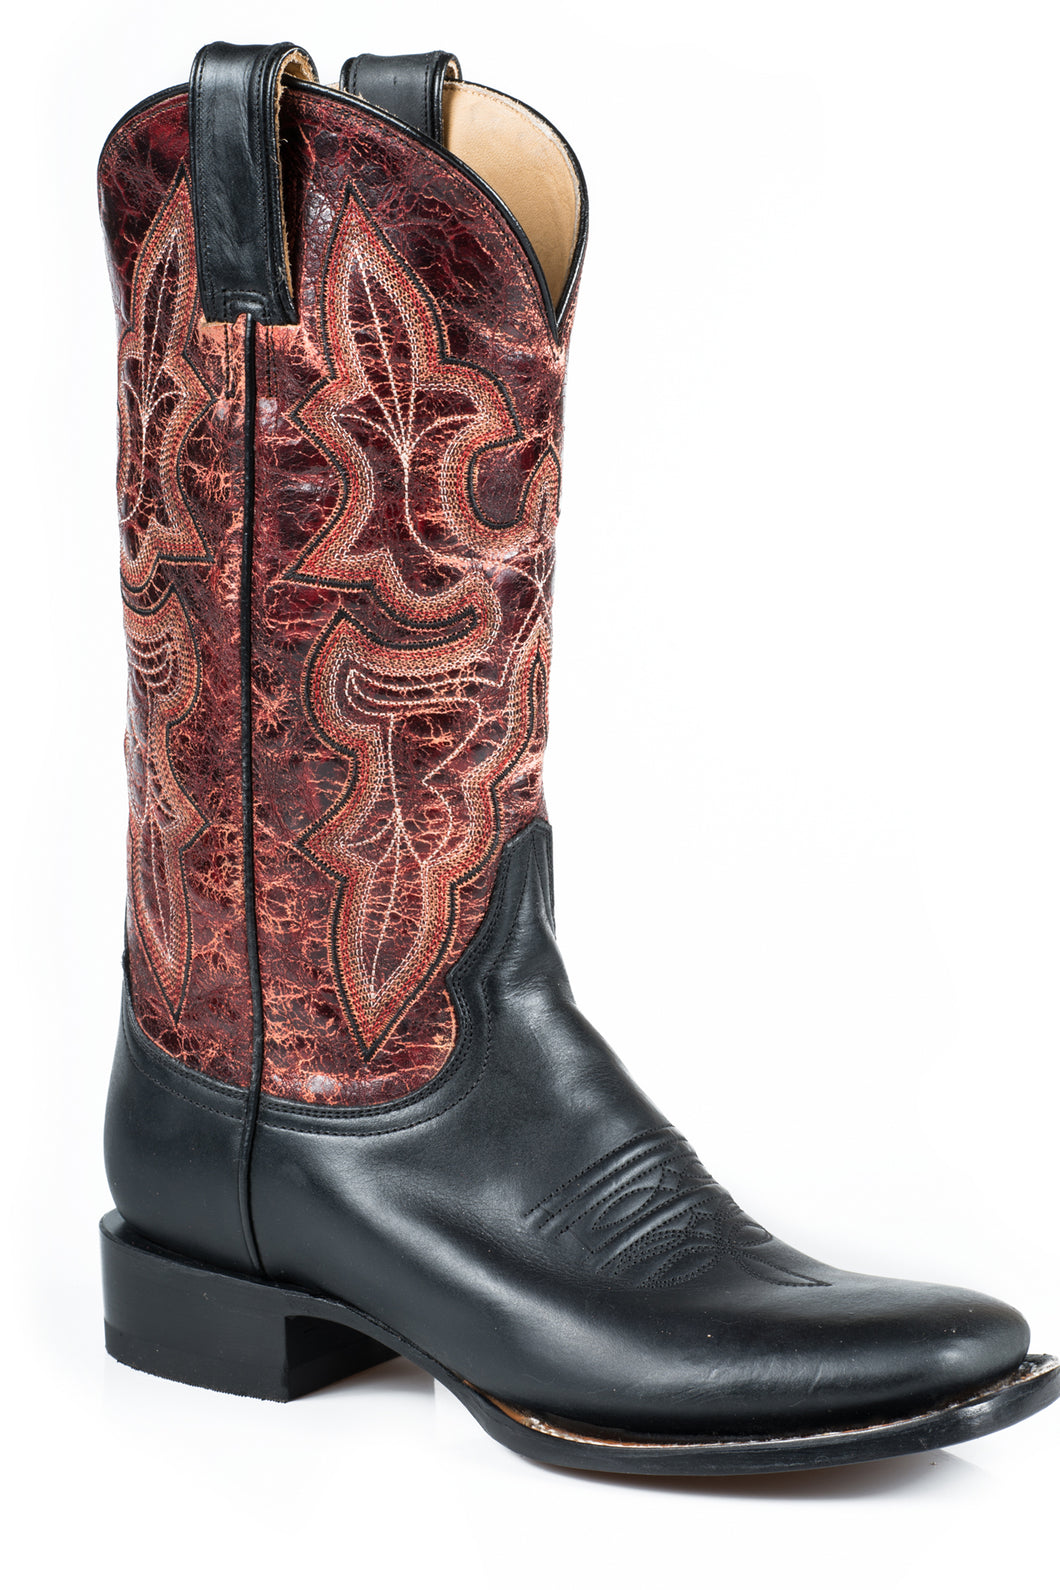 Jane Boot Ladies Boot Black Vamp Red Crackle 12